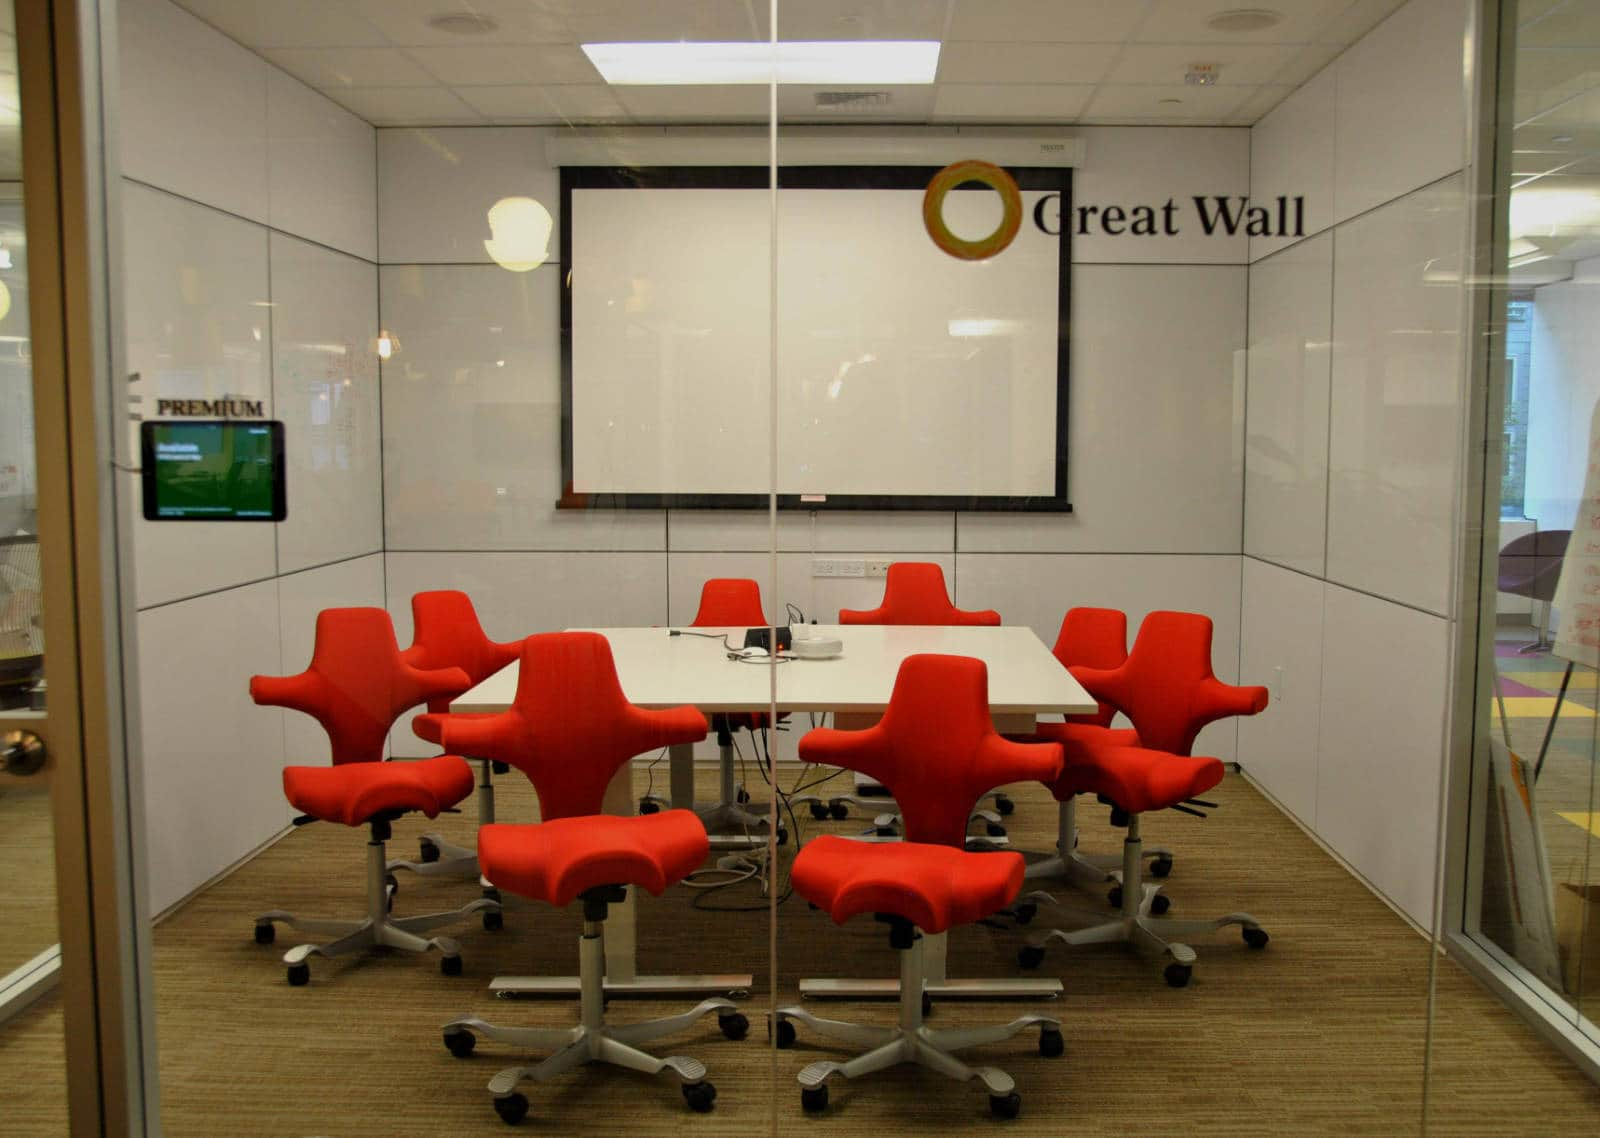 From outside the meeting room, looking through the glass walls, a large white table, with several very modern looking red chairs, a projector, and white walls.